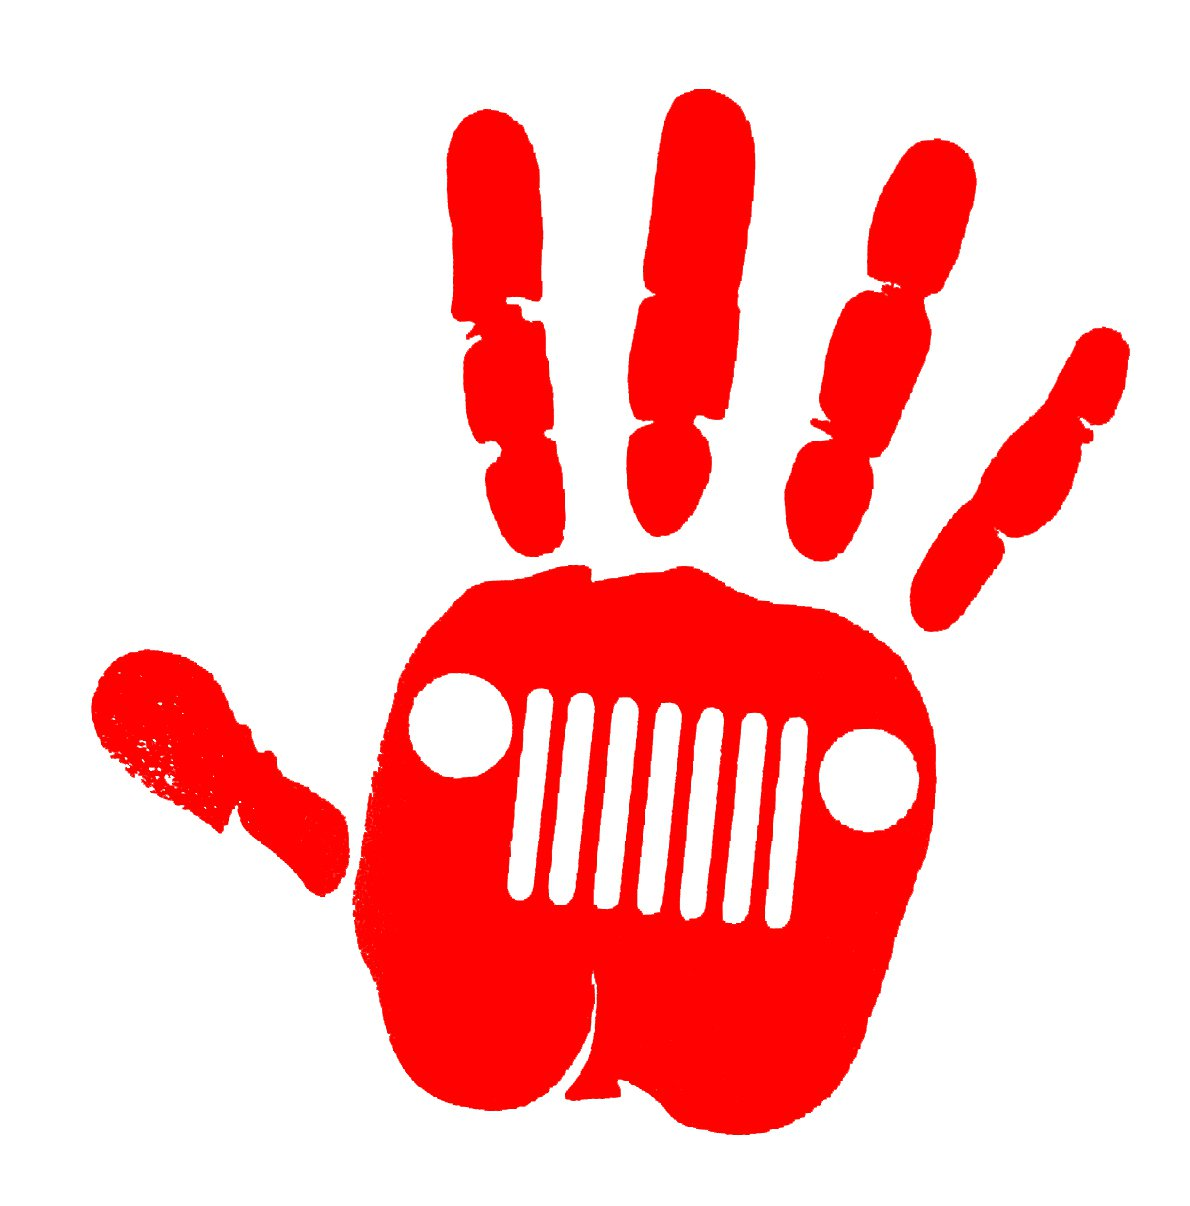 Jeep wave decal-red color